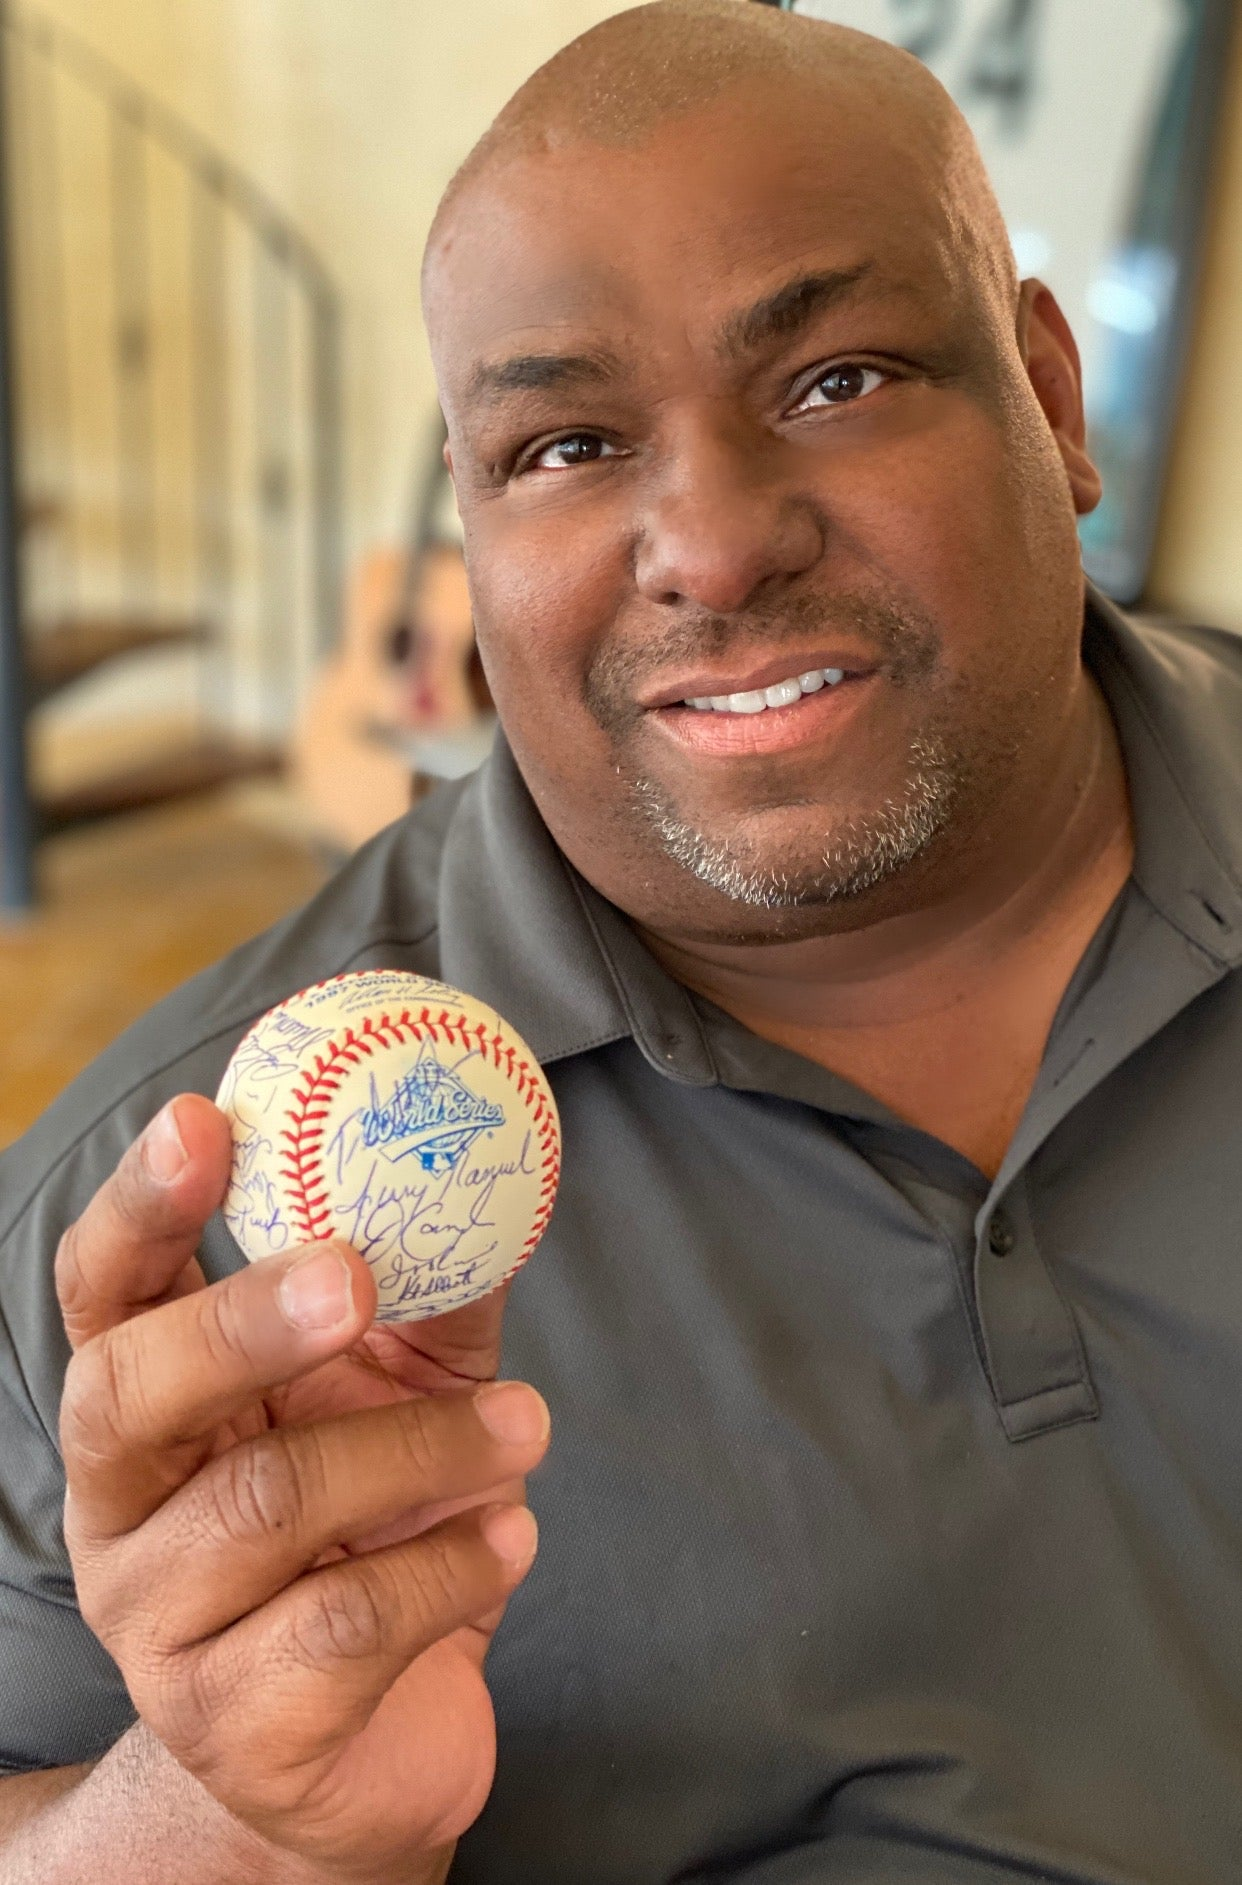 Official 1997 World Series Autographed Baseball from Bobby Bonilla